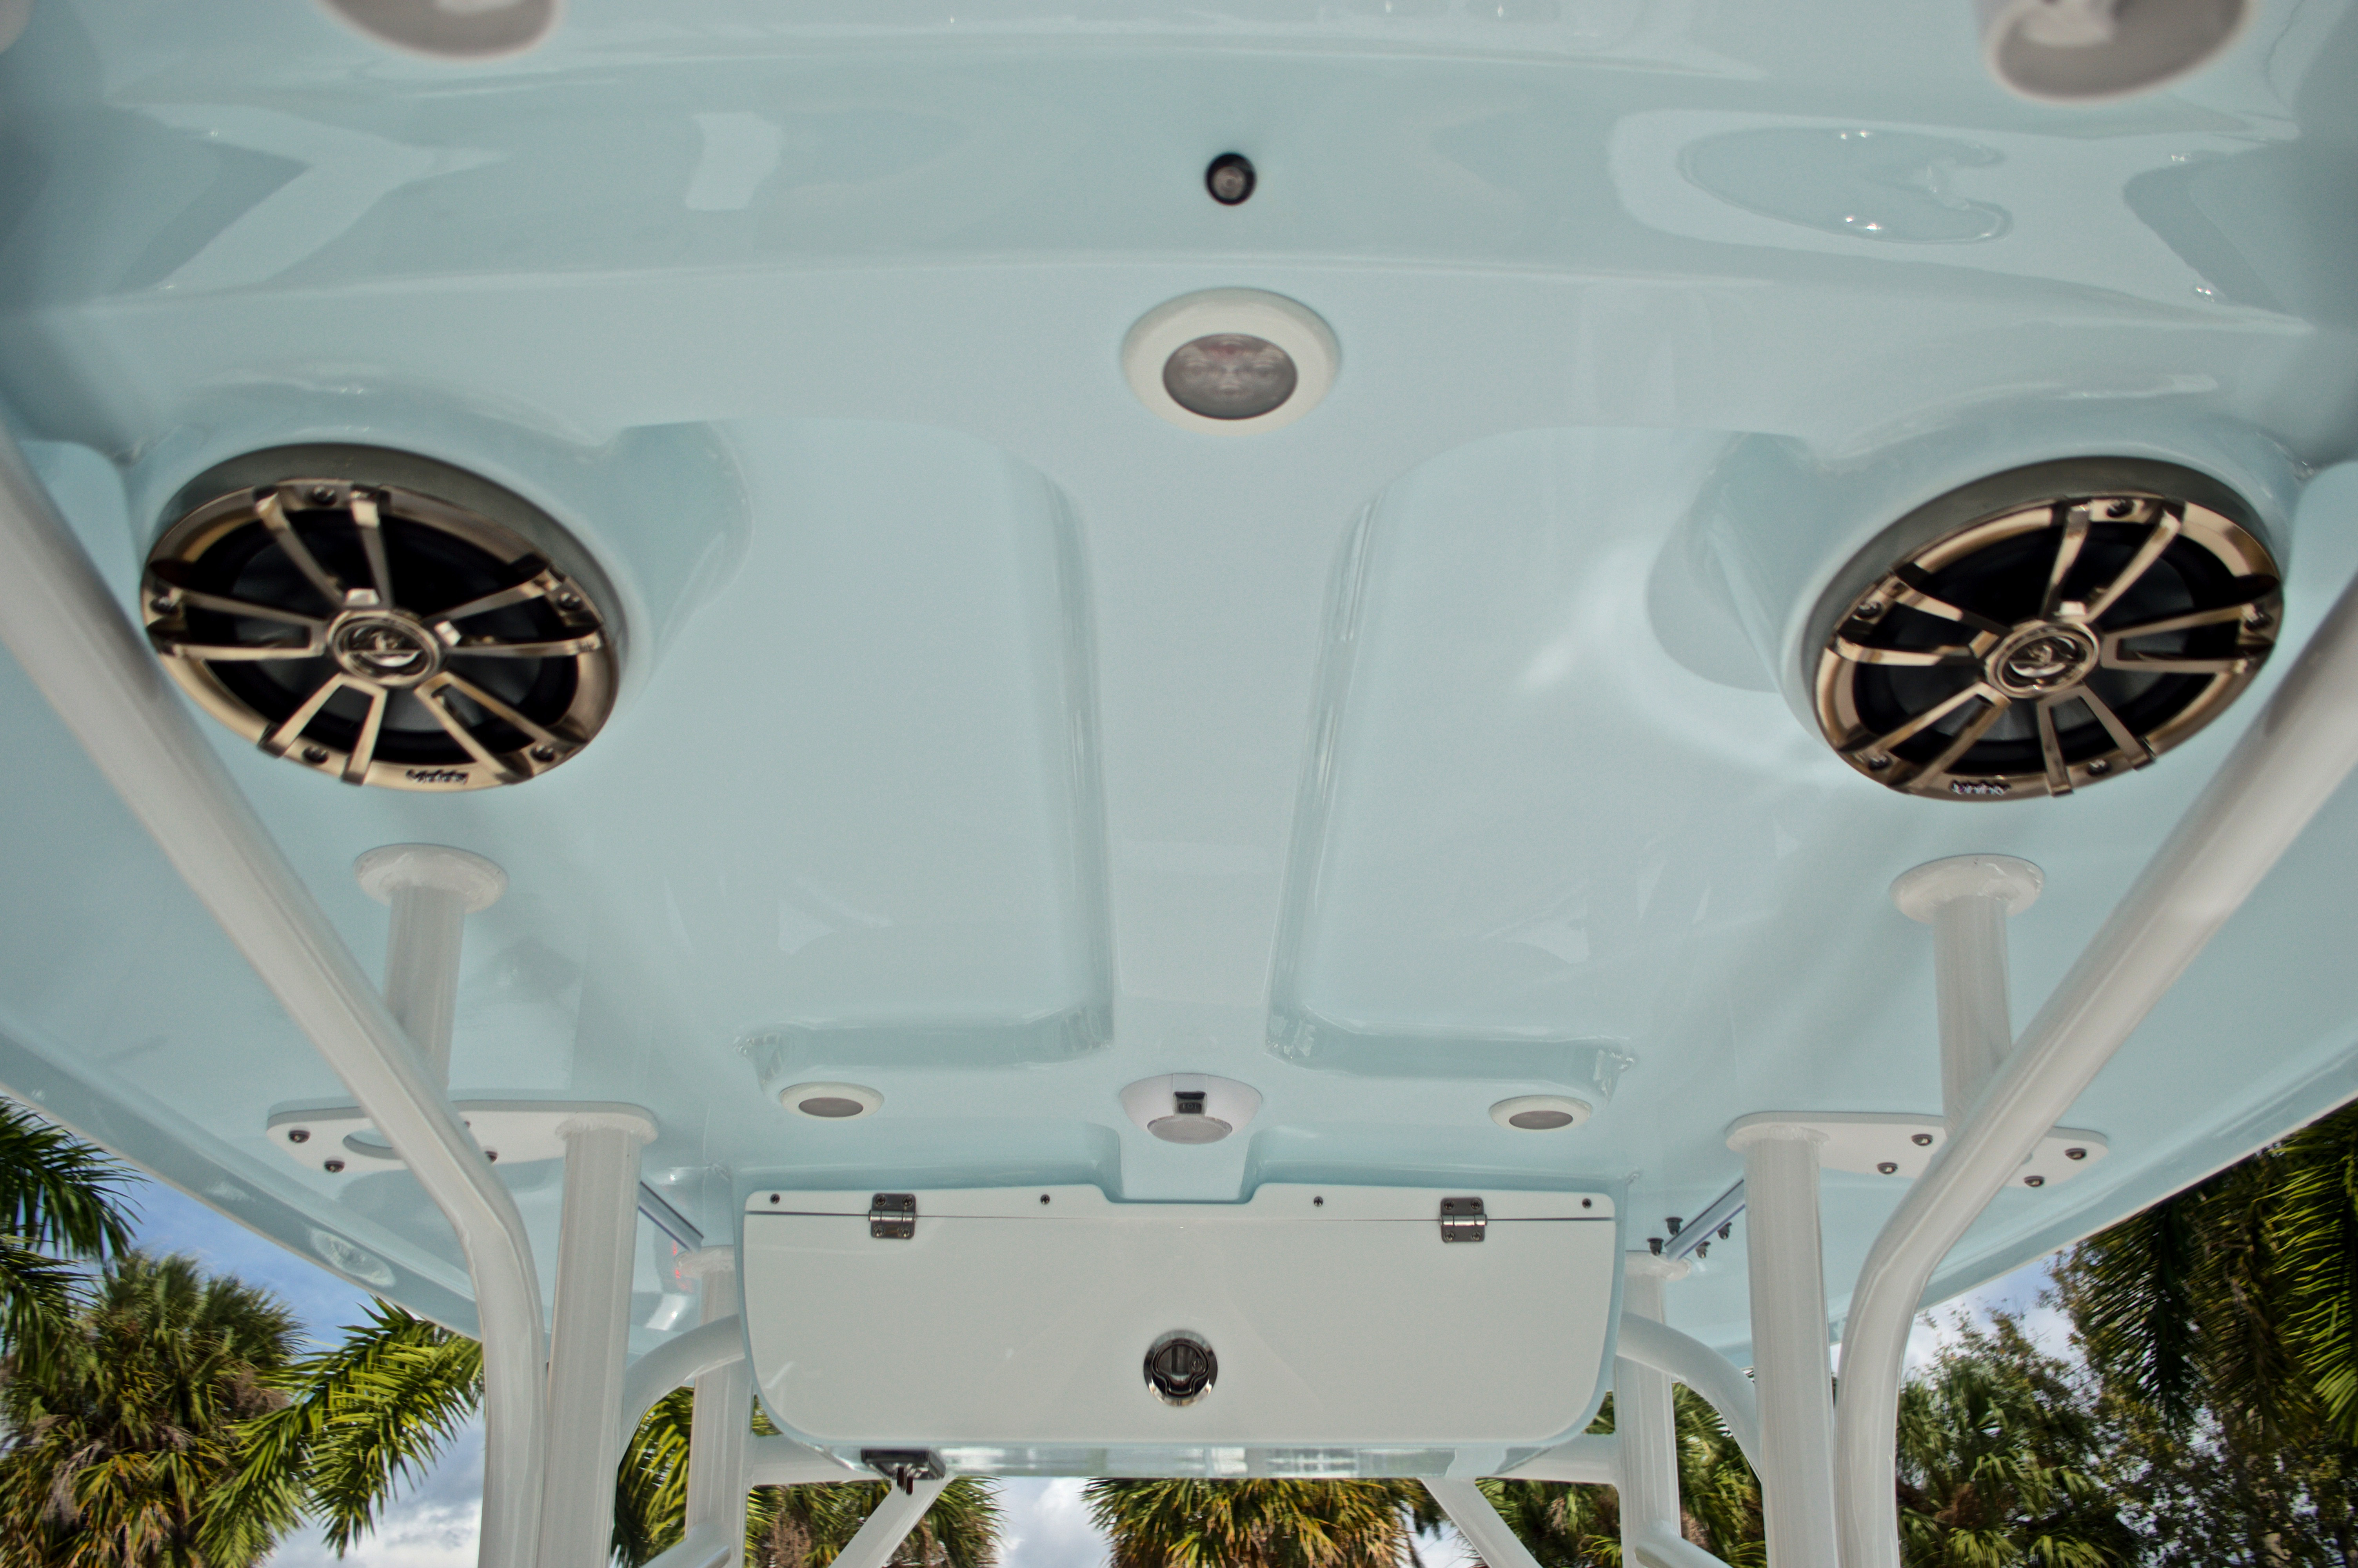 Thumbnail 26 for New 2017 Sportsman Open 232 Center Console boat for sale in West Palm Beach, FL